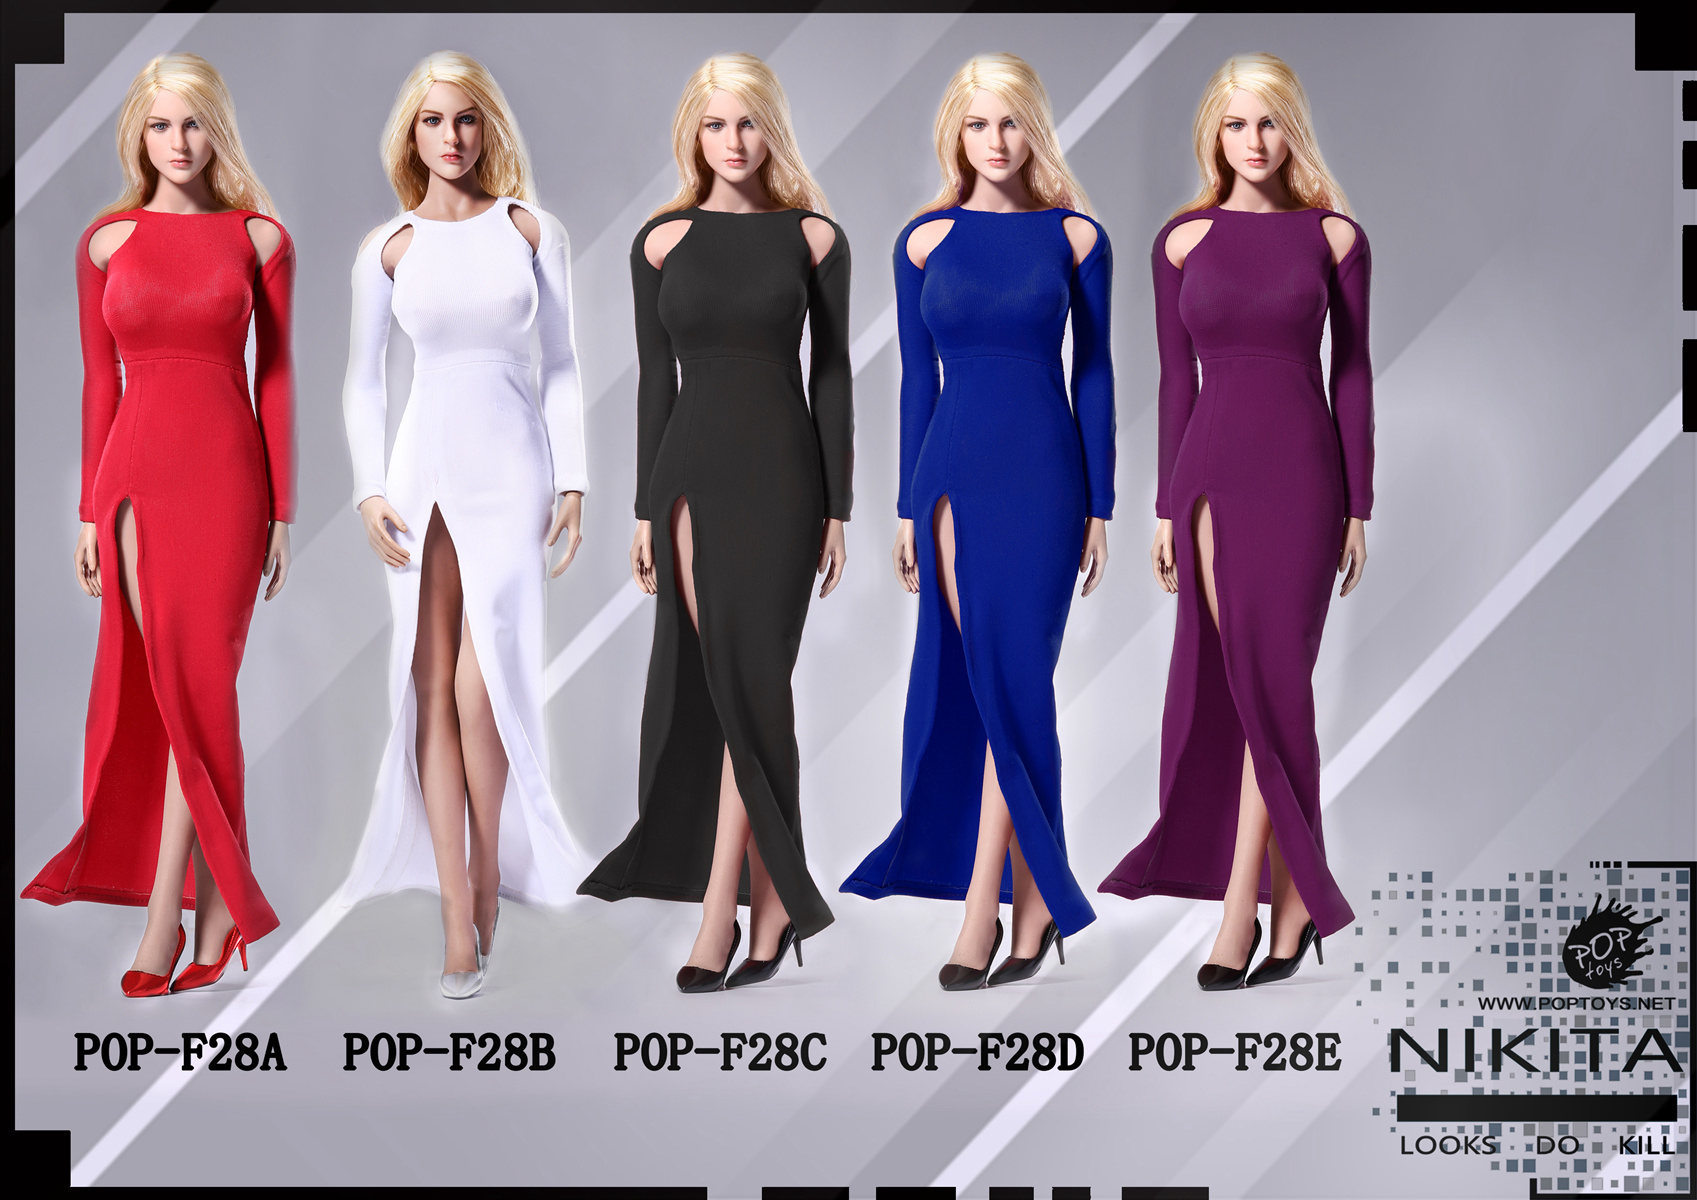 POPTOYS F28A-E NIKITA bare-shouldered evening dress suit